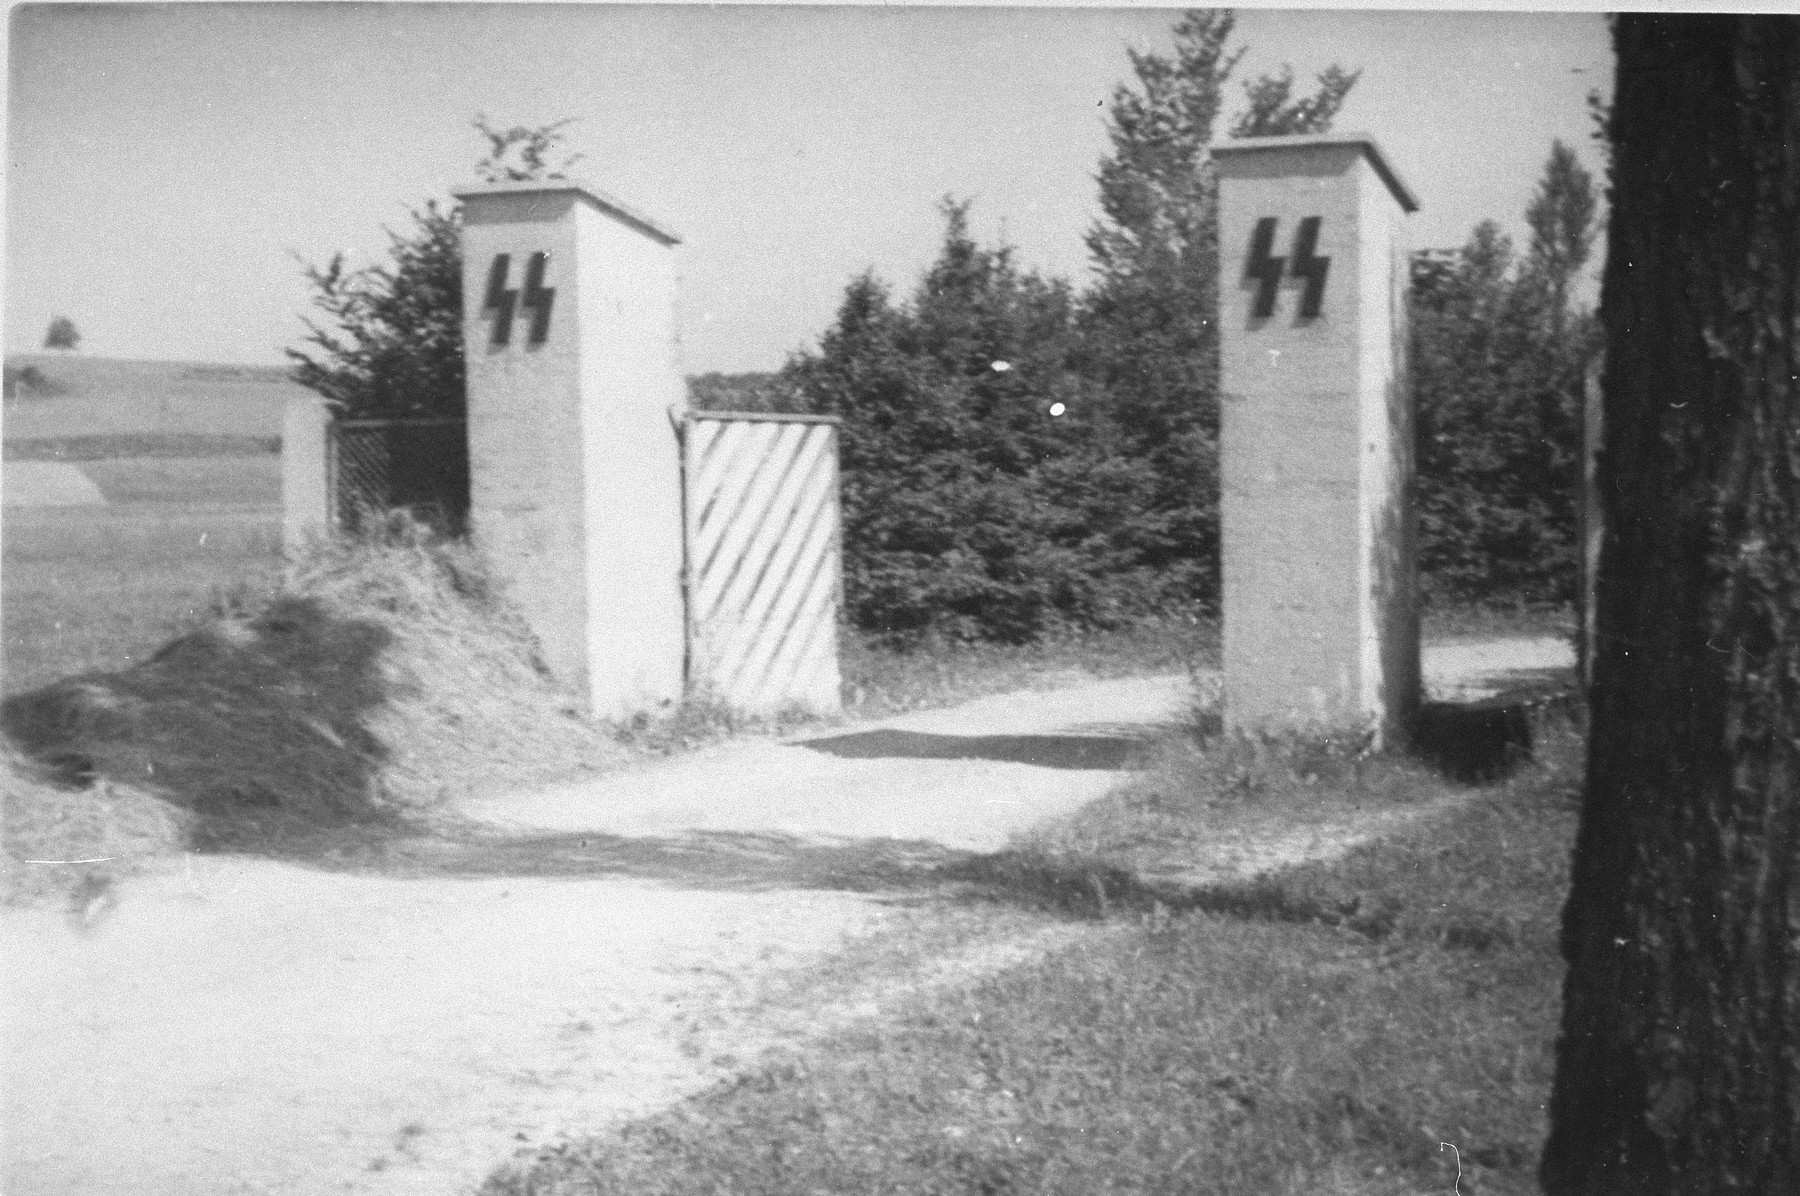 The entrance to an SS troop training area constructed near the Ohrdruf concentration camp.